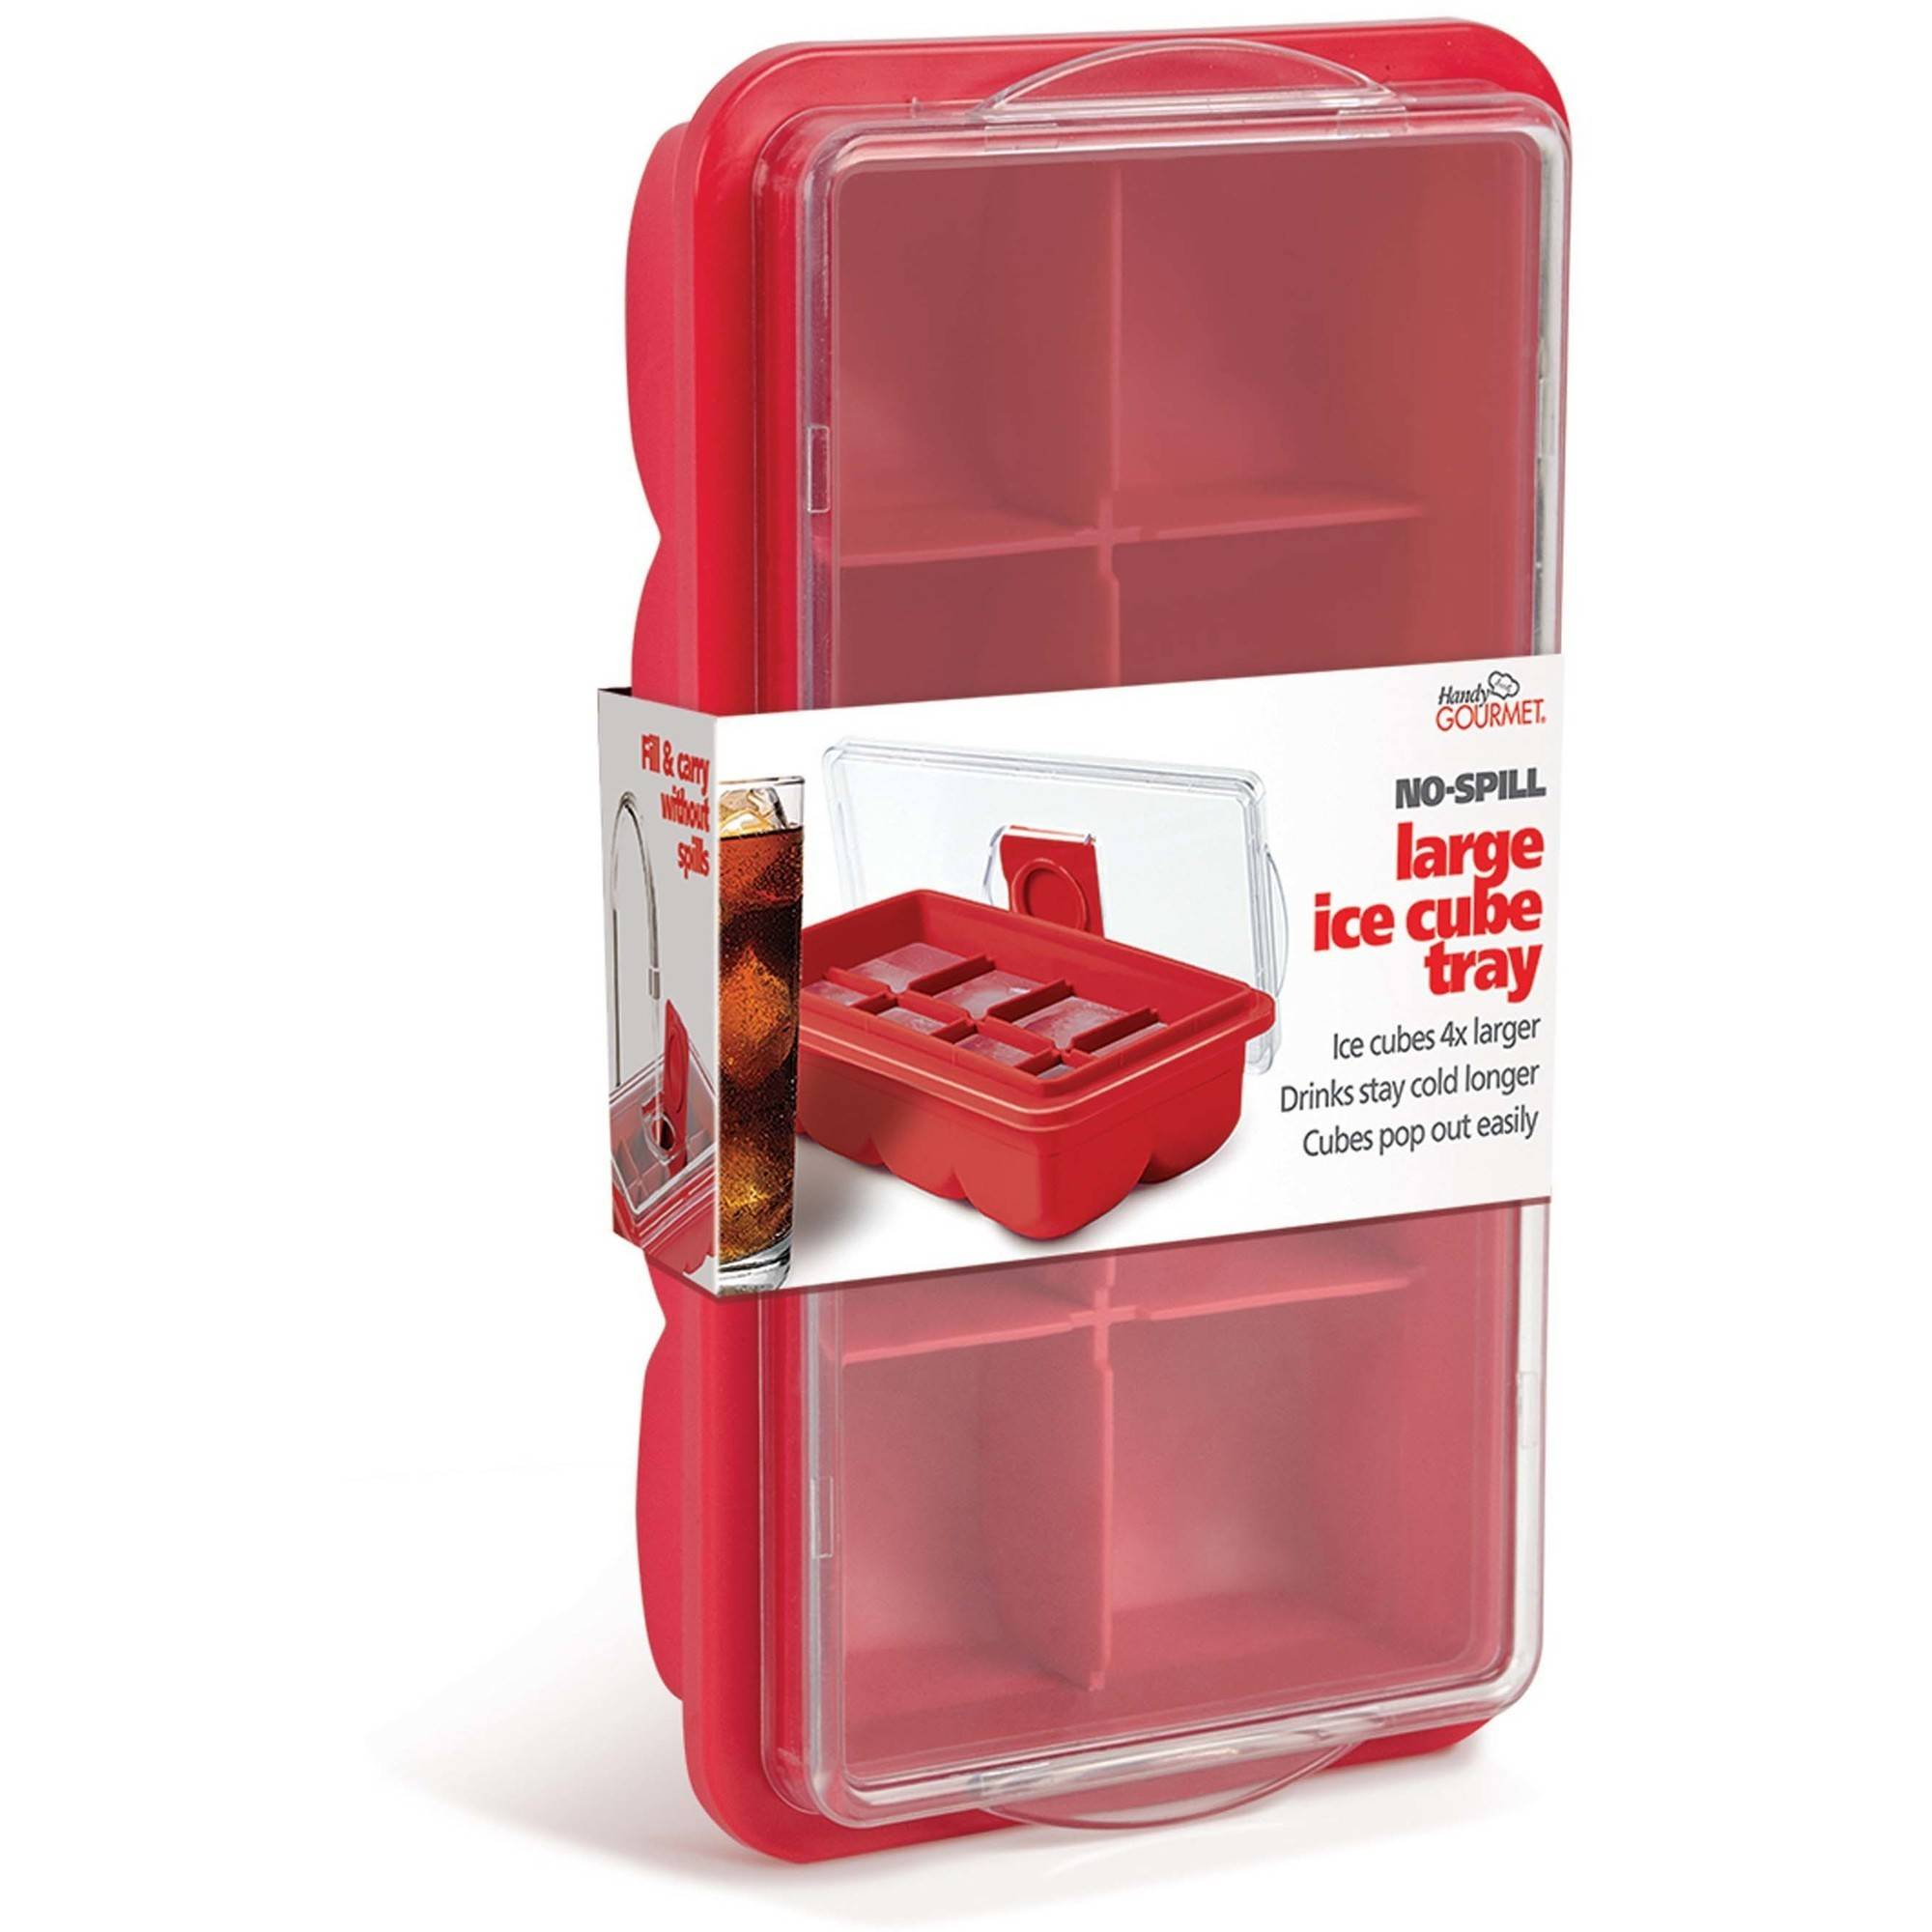 Handy Gourmet No-Spill Extra Large Ice Cube Tray with Cover